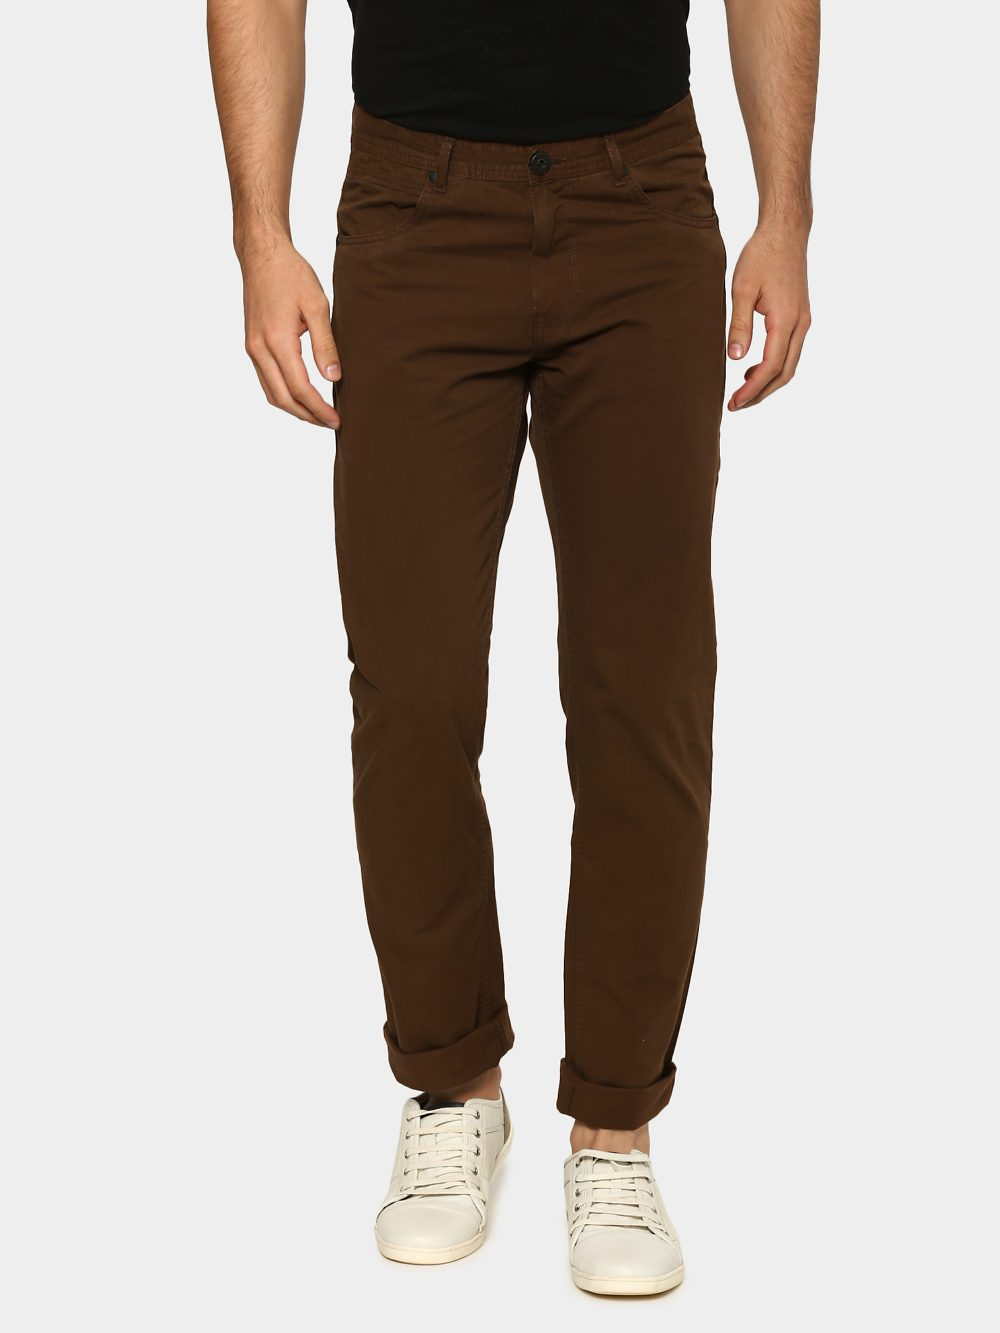 eb00a5696f0 45% OFF. abof Men Brown Slim Fit Overdyed Casual Trousers